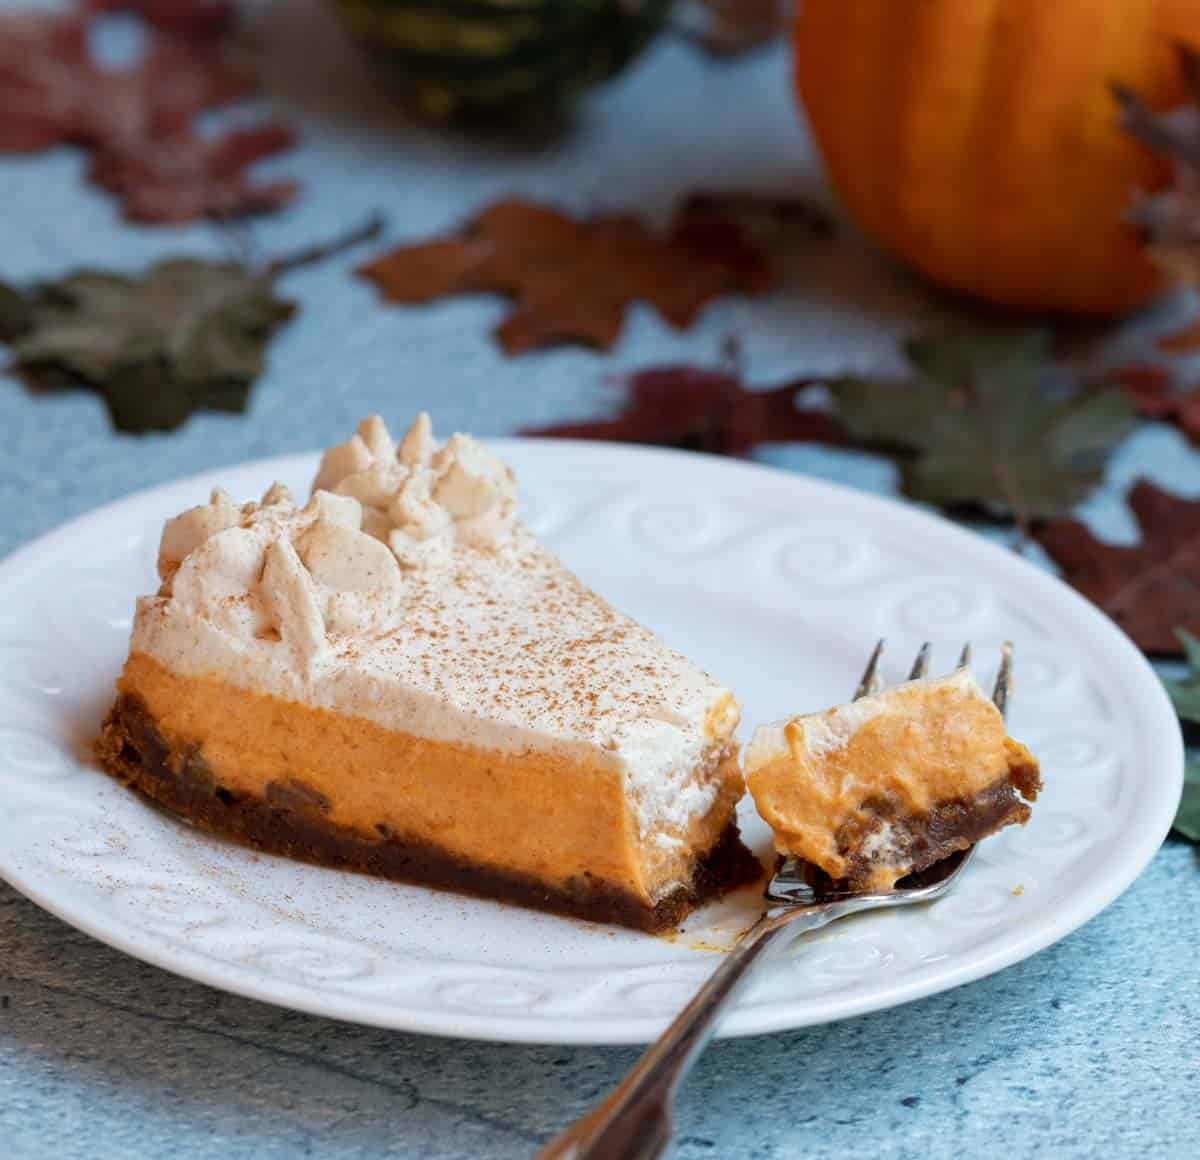 Slice of Rum Pumpkin Tart